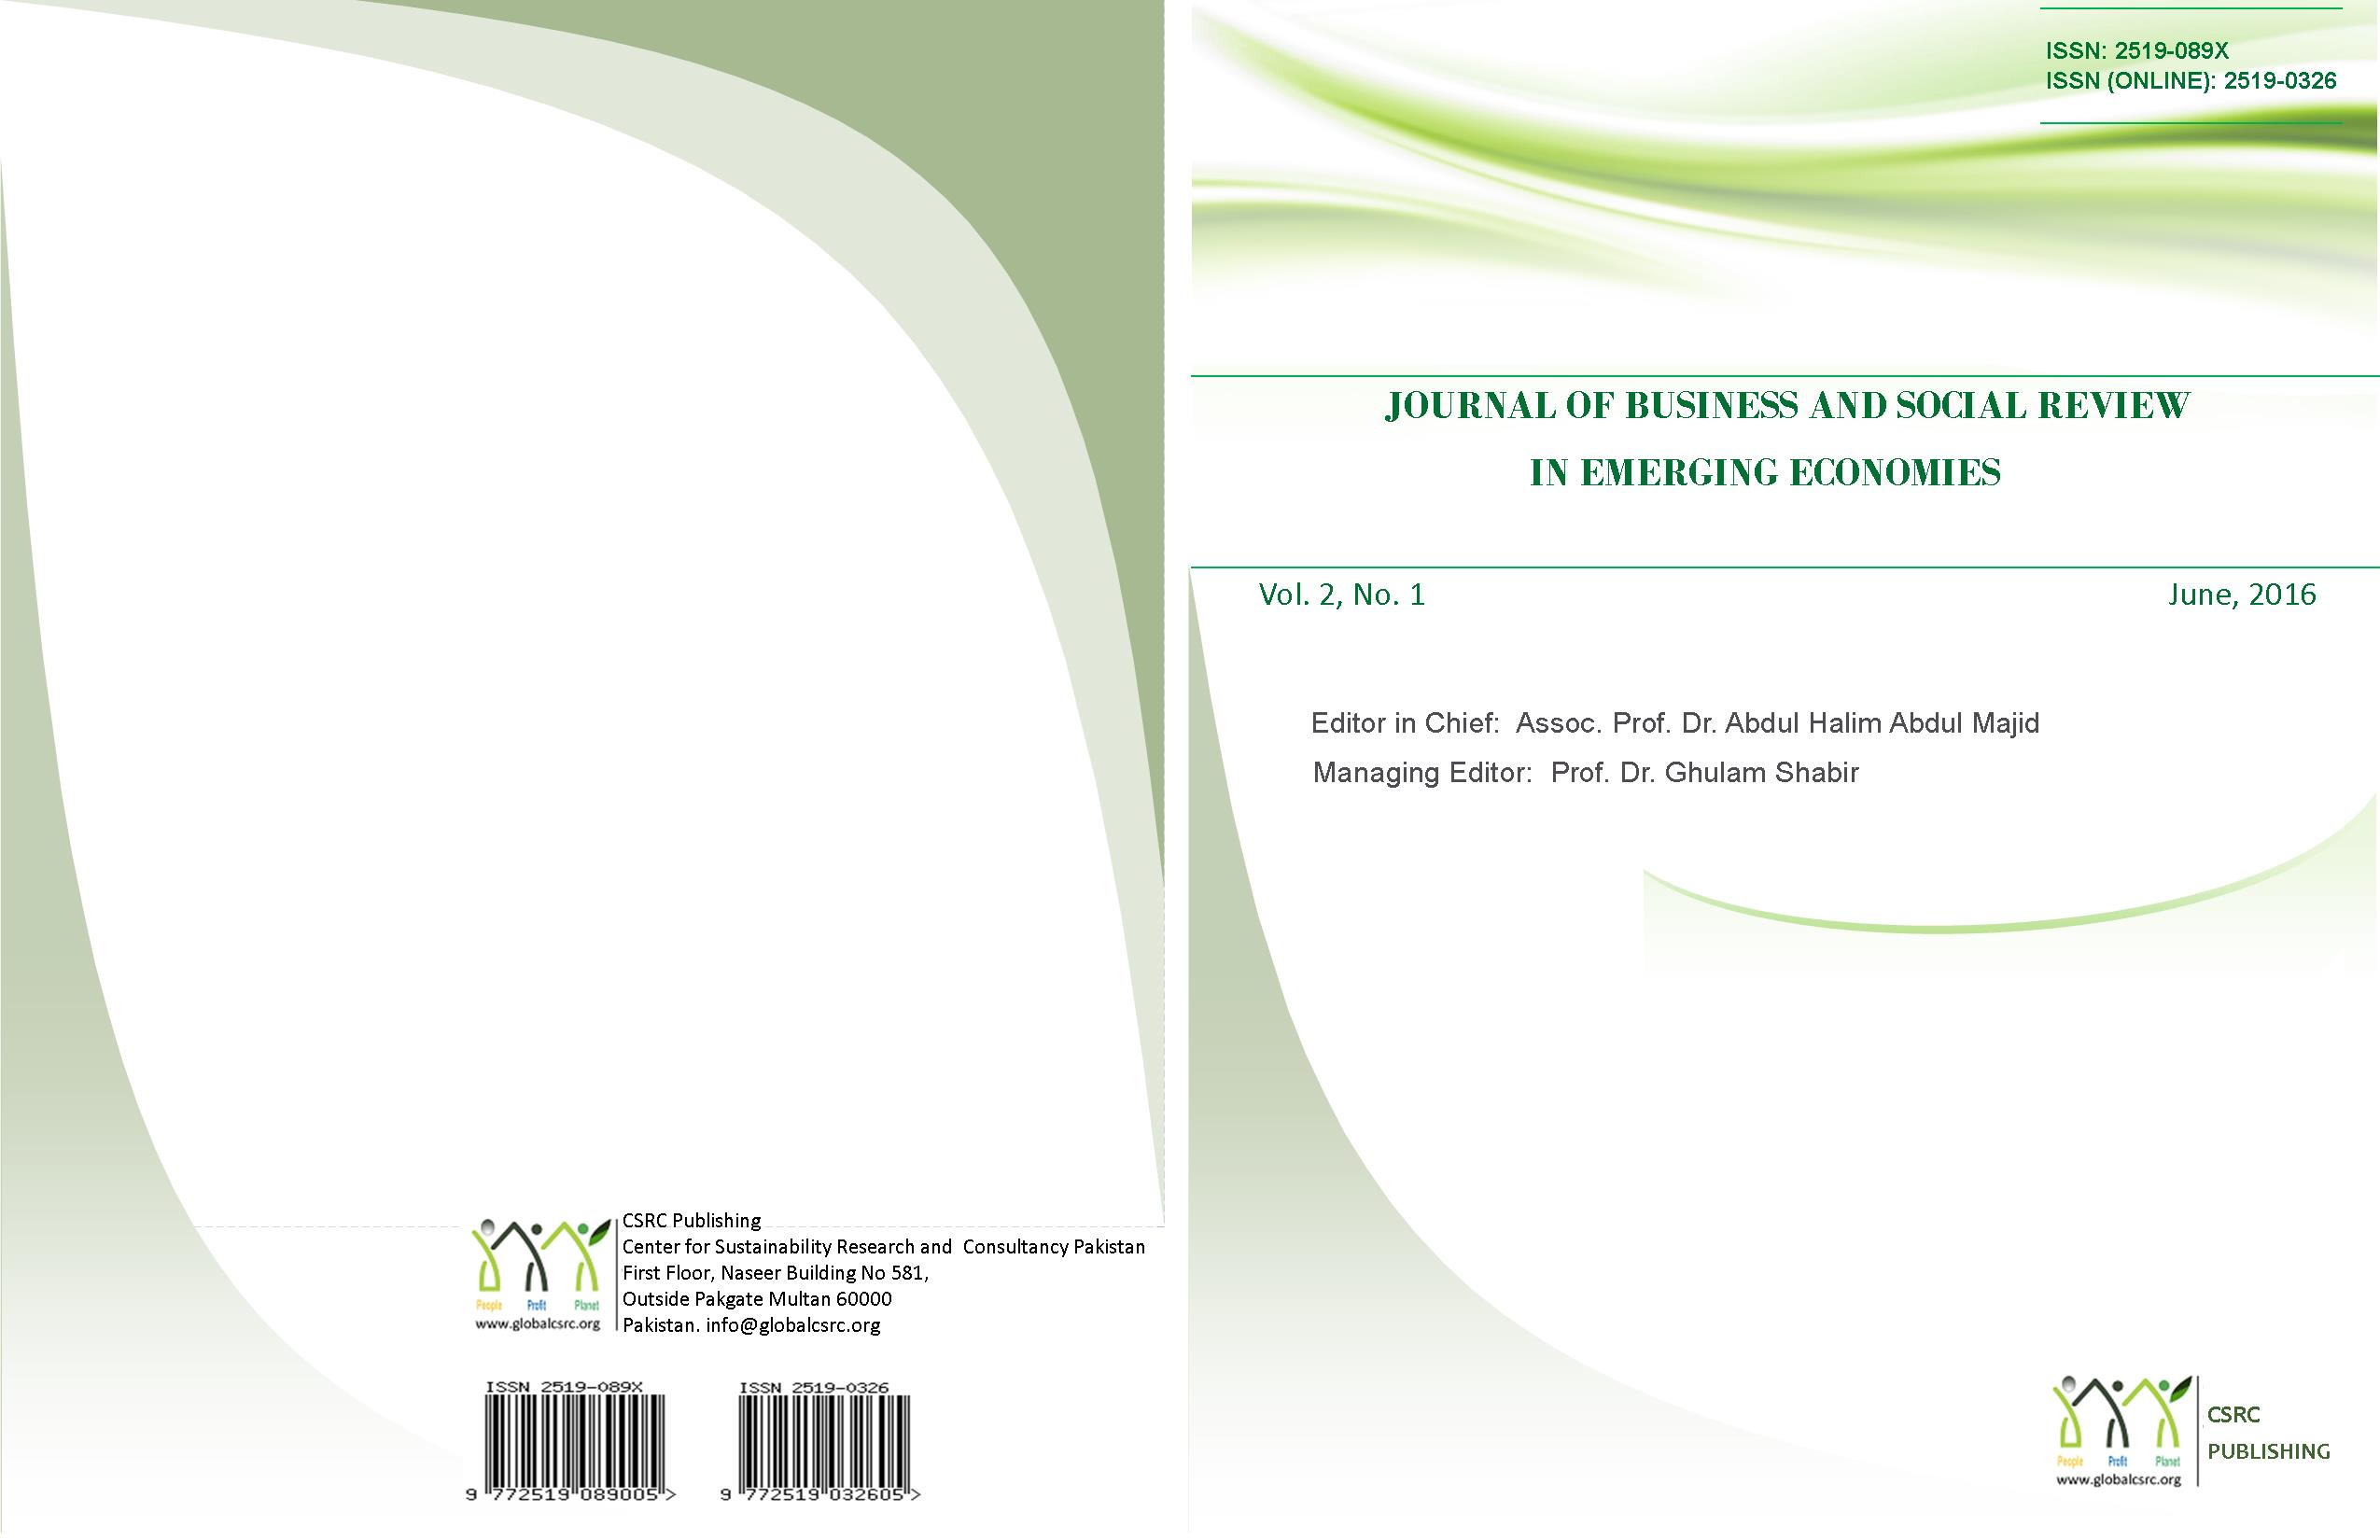 Journal of Business and Social Review in Emerging Economies, Vol 2, No. 1, June 2016